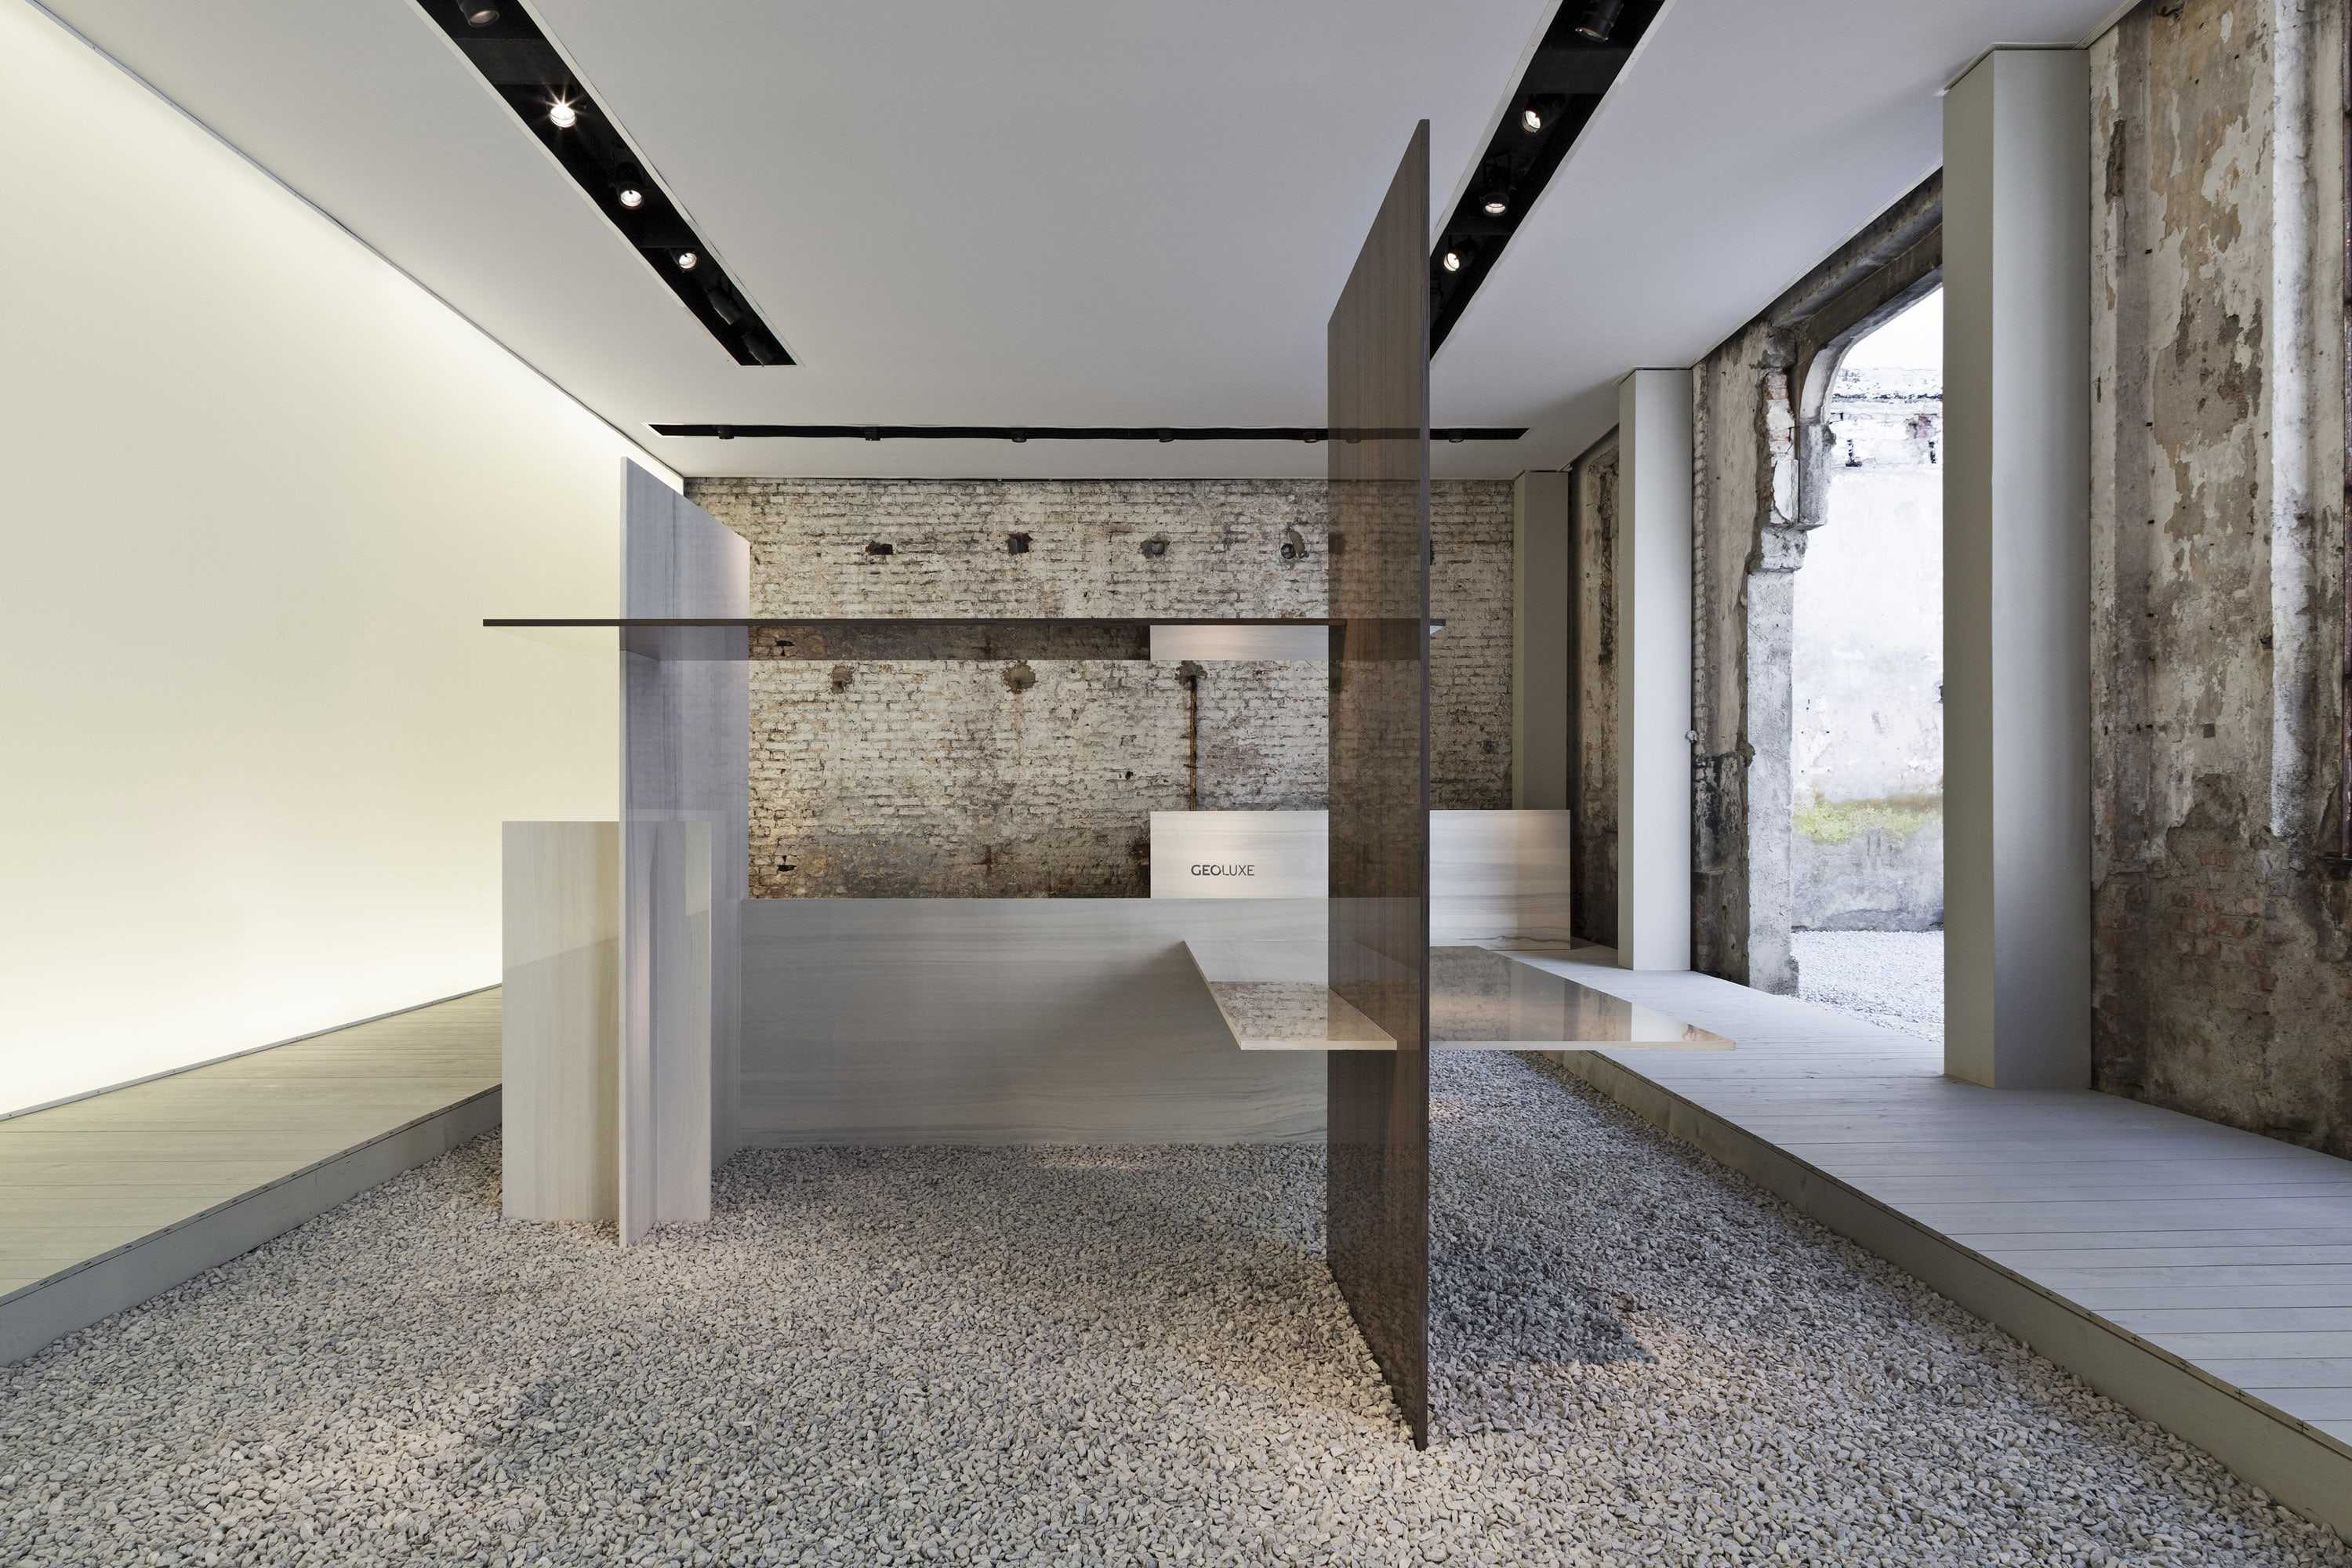 Ine design stone 187 other products - On The Occasion Of Fuorisalone 2016 Naoto Fukasawa Has Signed The Unveil Event Organized By Geoluxe By Scg Group In Which He Presented The New